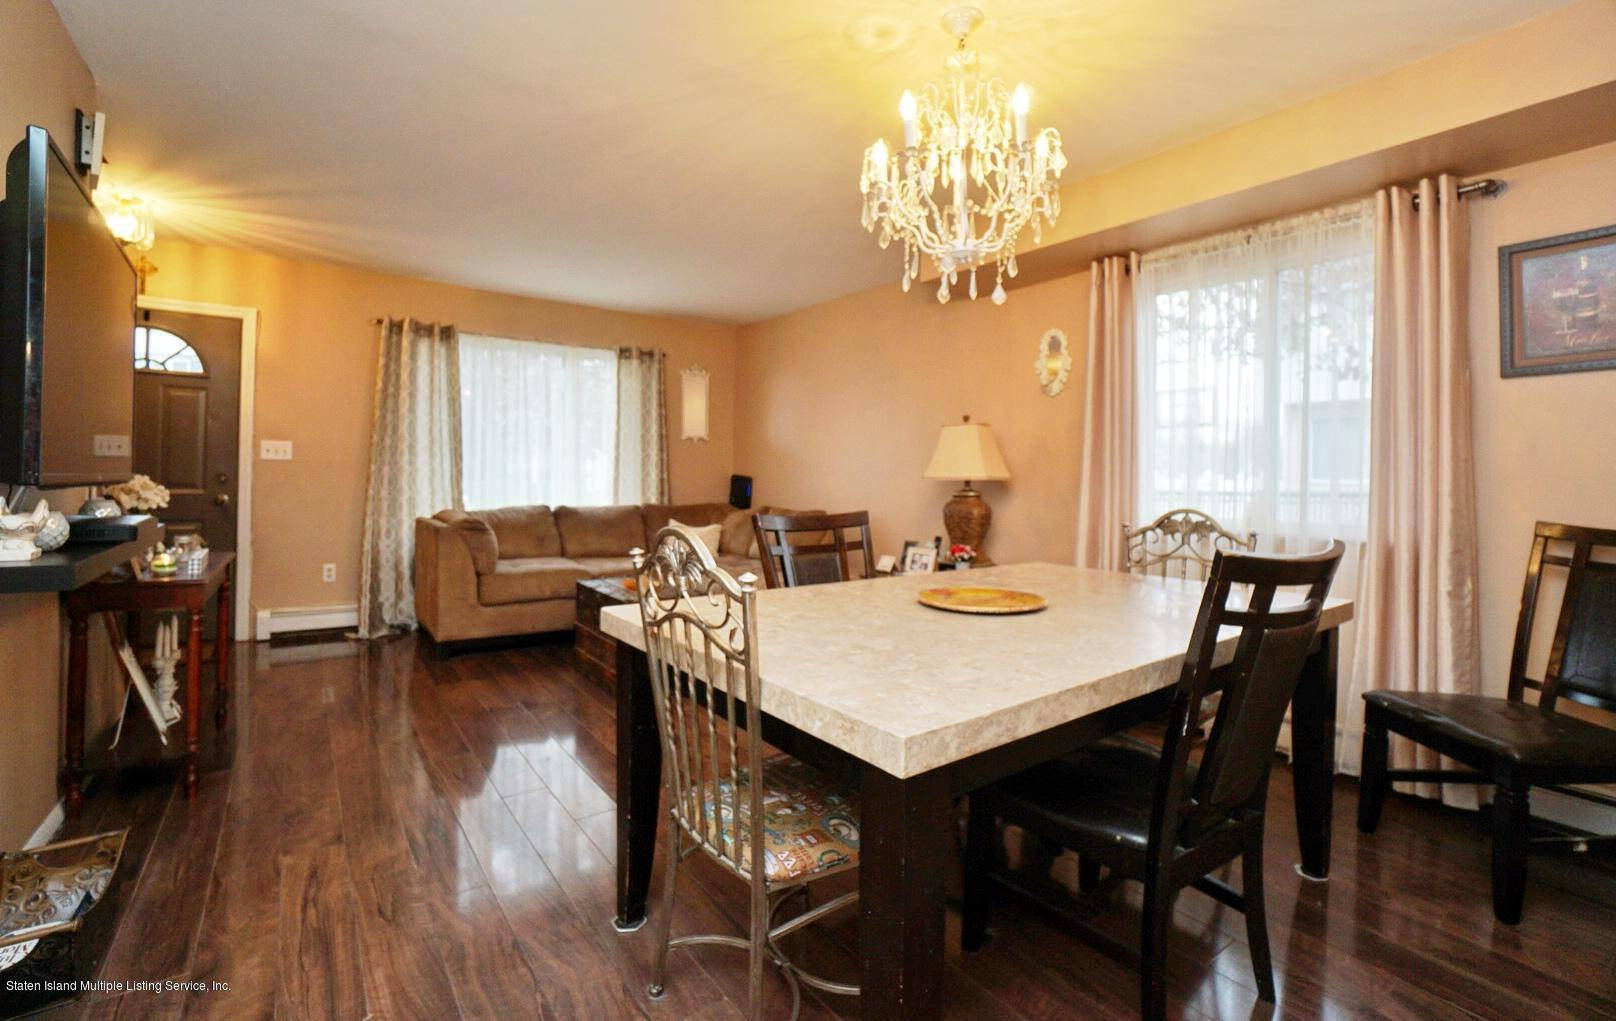 Single Family - Semi-Attached 321 Mosely Avenue  Staten Island, NY 10312, MLS-1133905-7